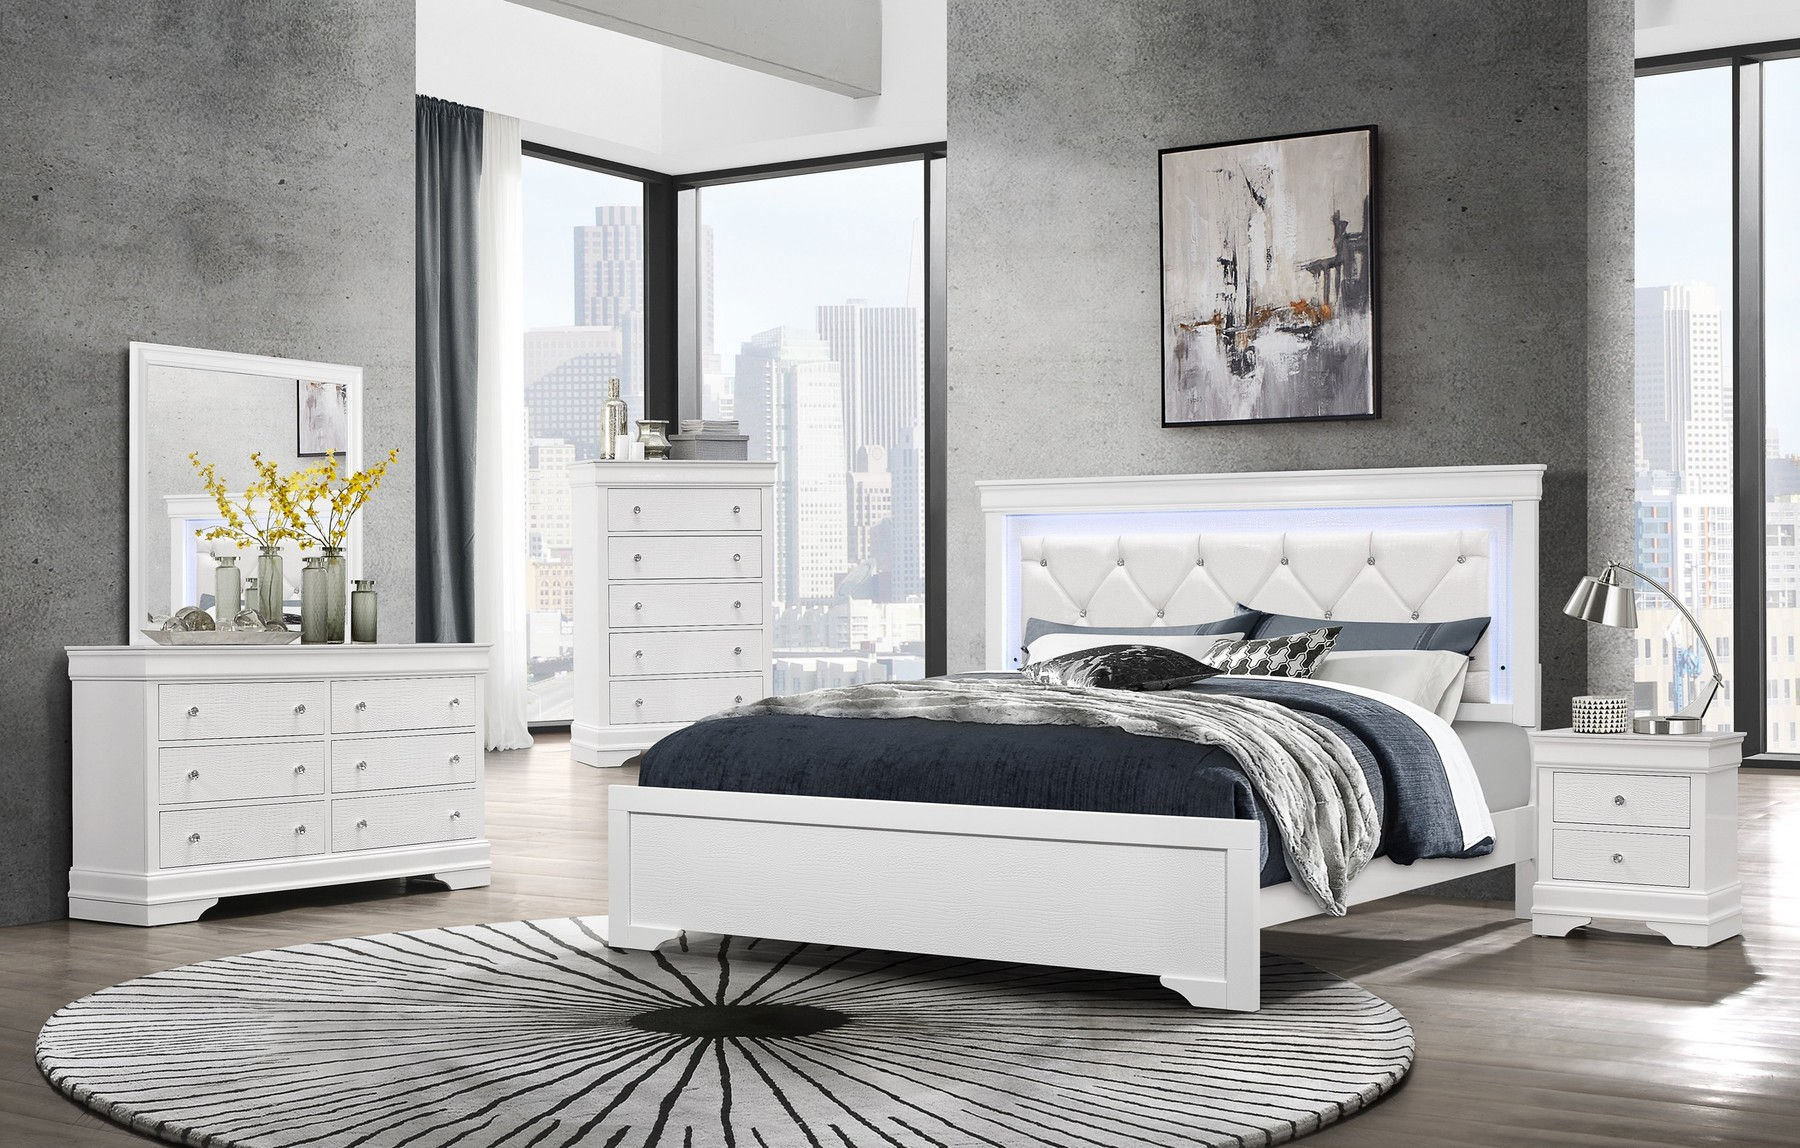 Pompei White King Set King Size B 2ns Dr Mr Pompei Global Furniture Usa Bedroom Sets Comfyco Furniture